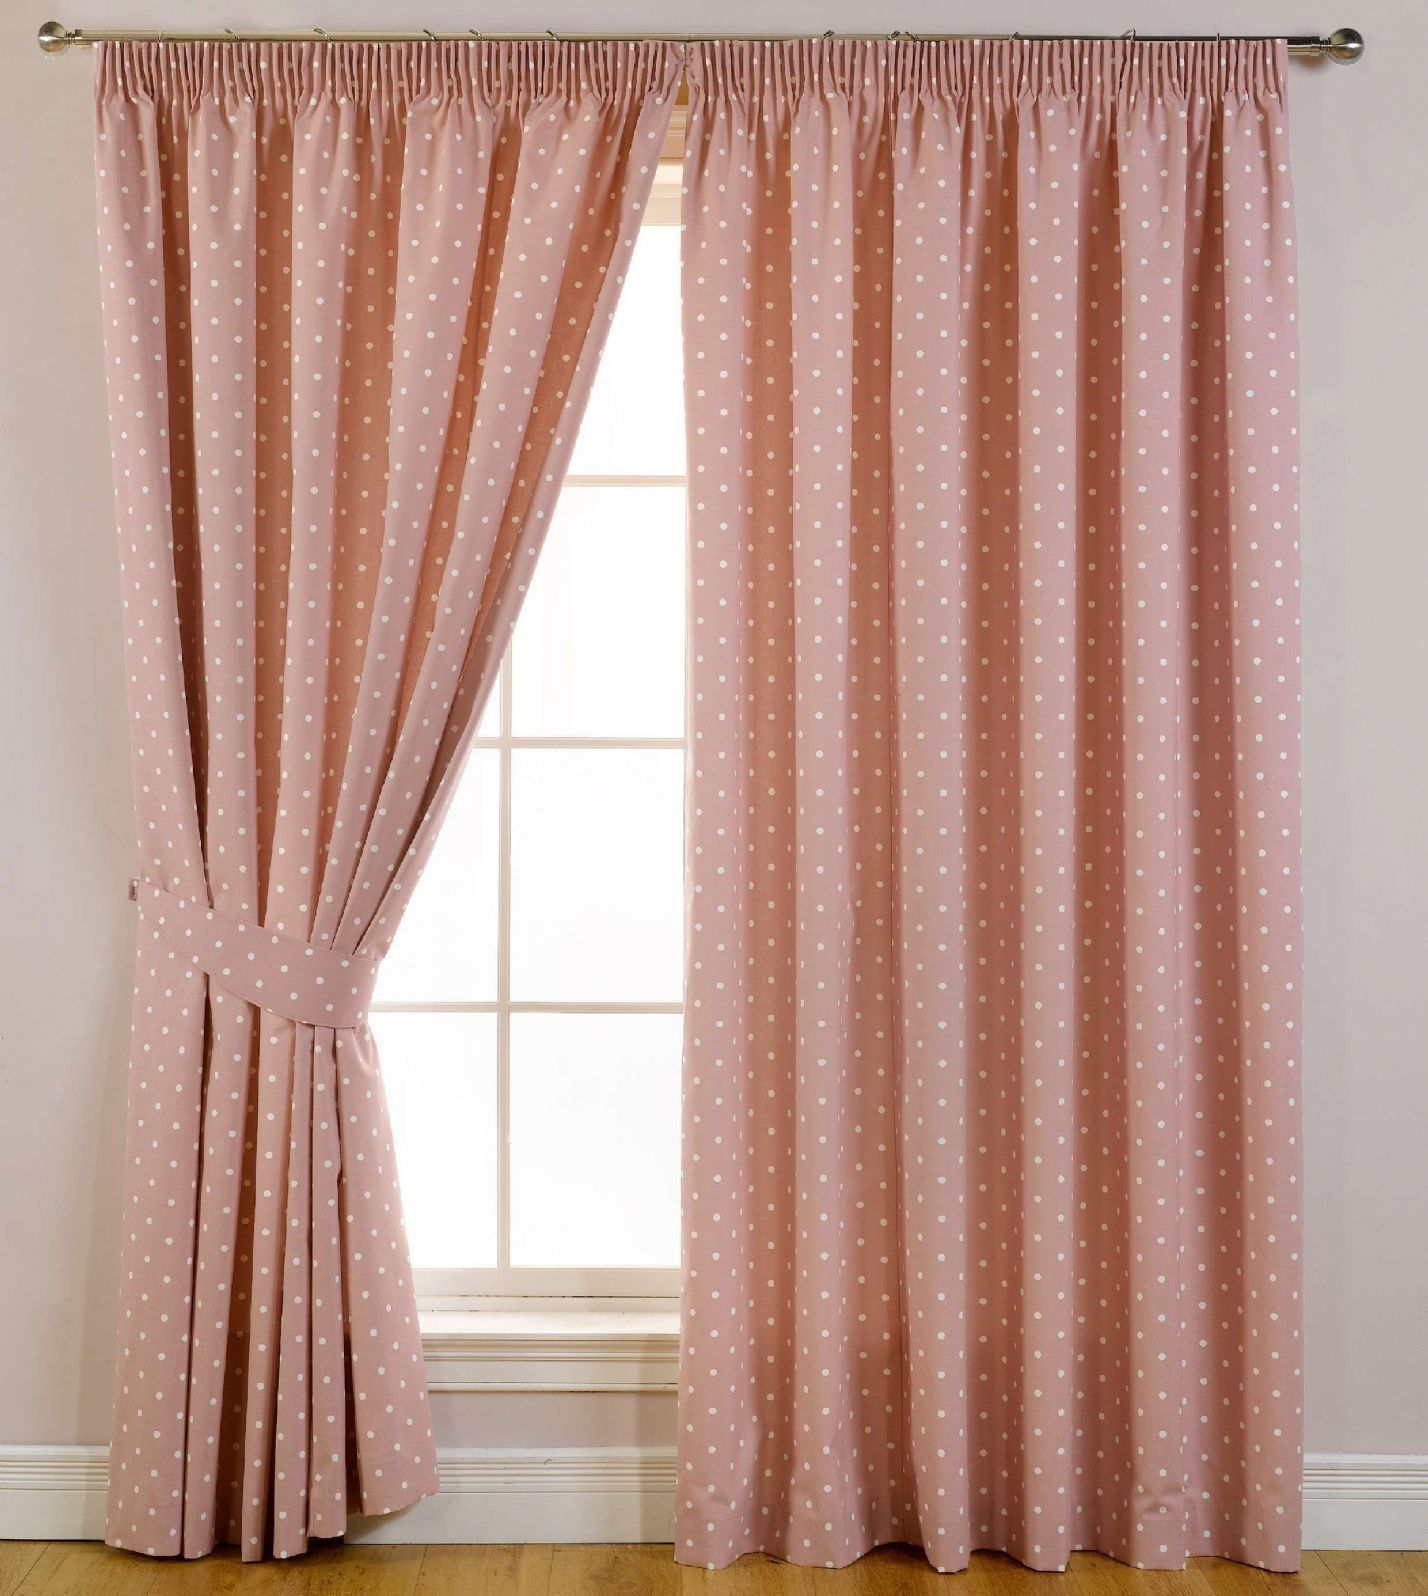 info window kitchen for fancy windows curtains realtag pin curtain pinterest